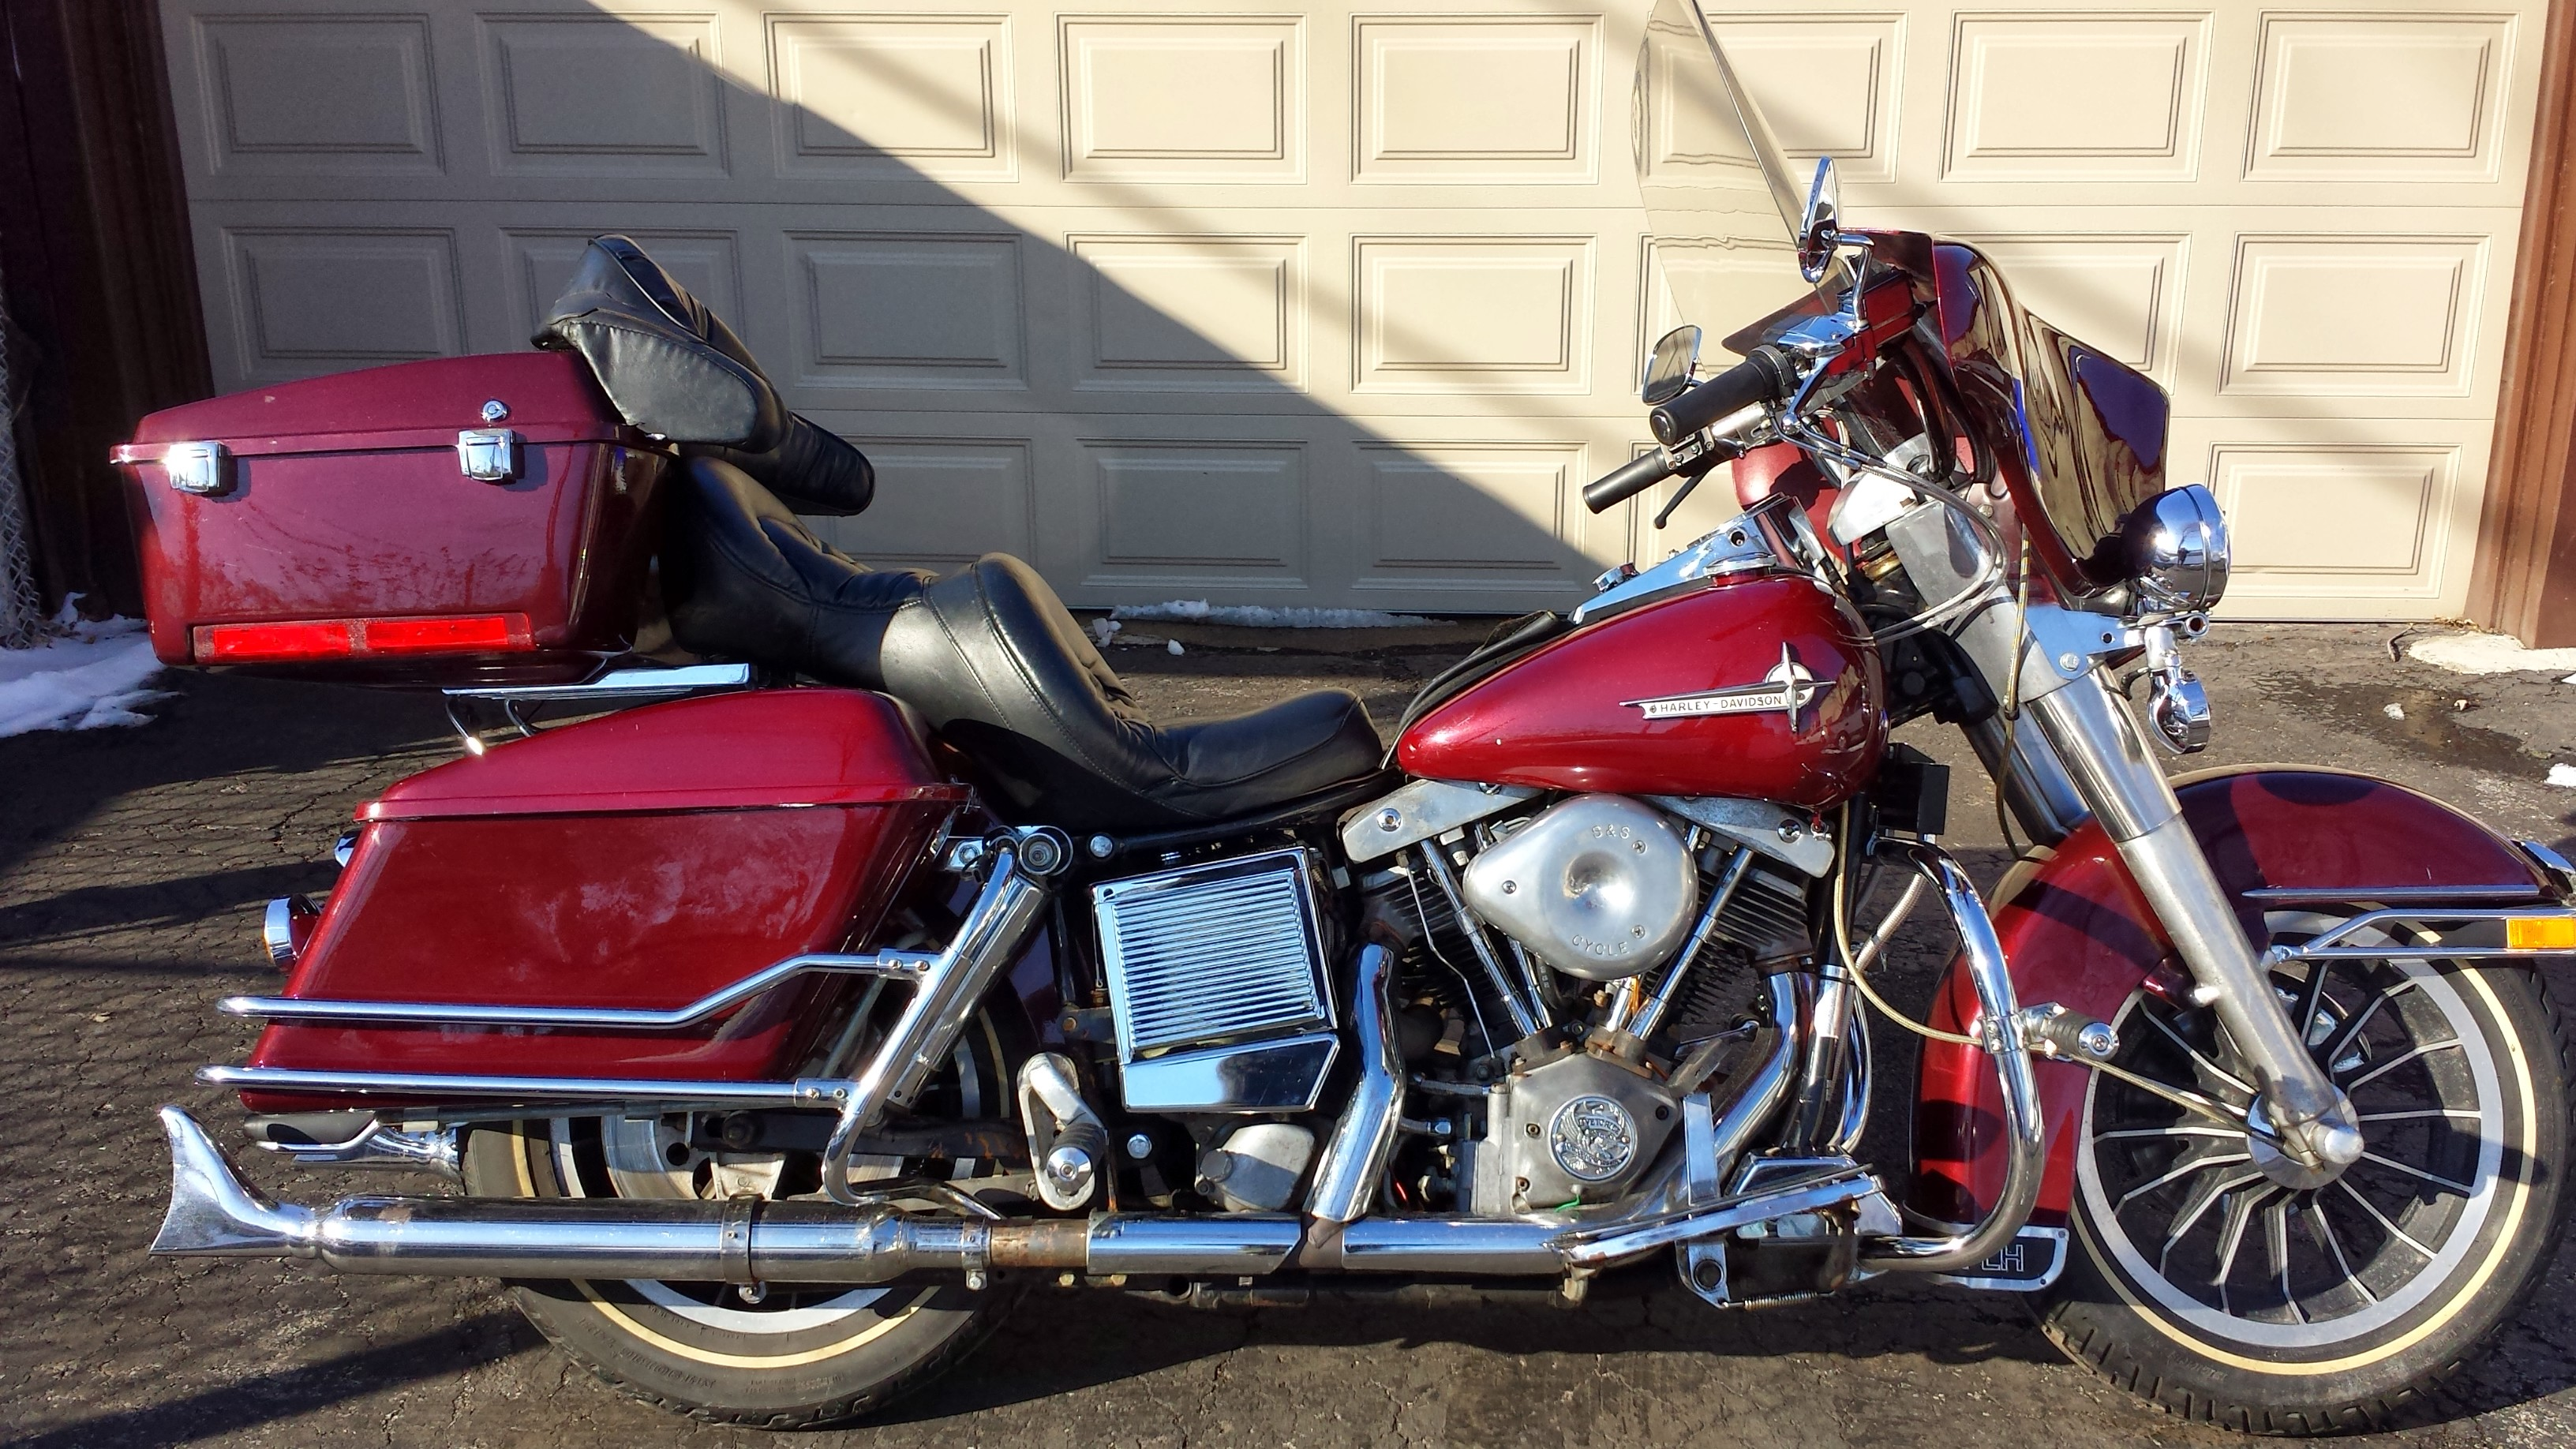 Harley-Davidson FLHTC 1340 Electra Glide Classic 1985 pics #15281